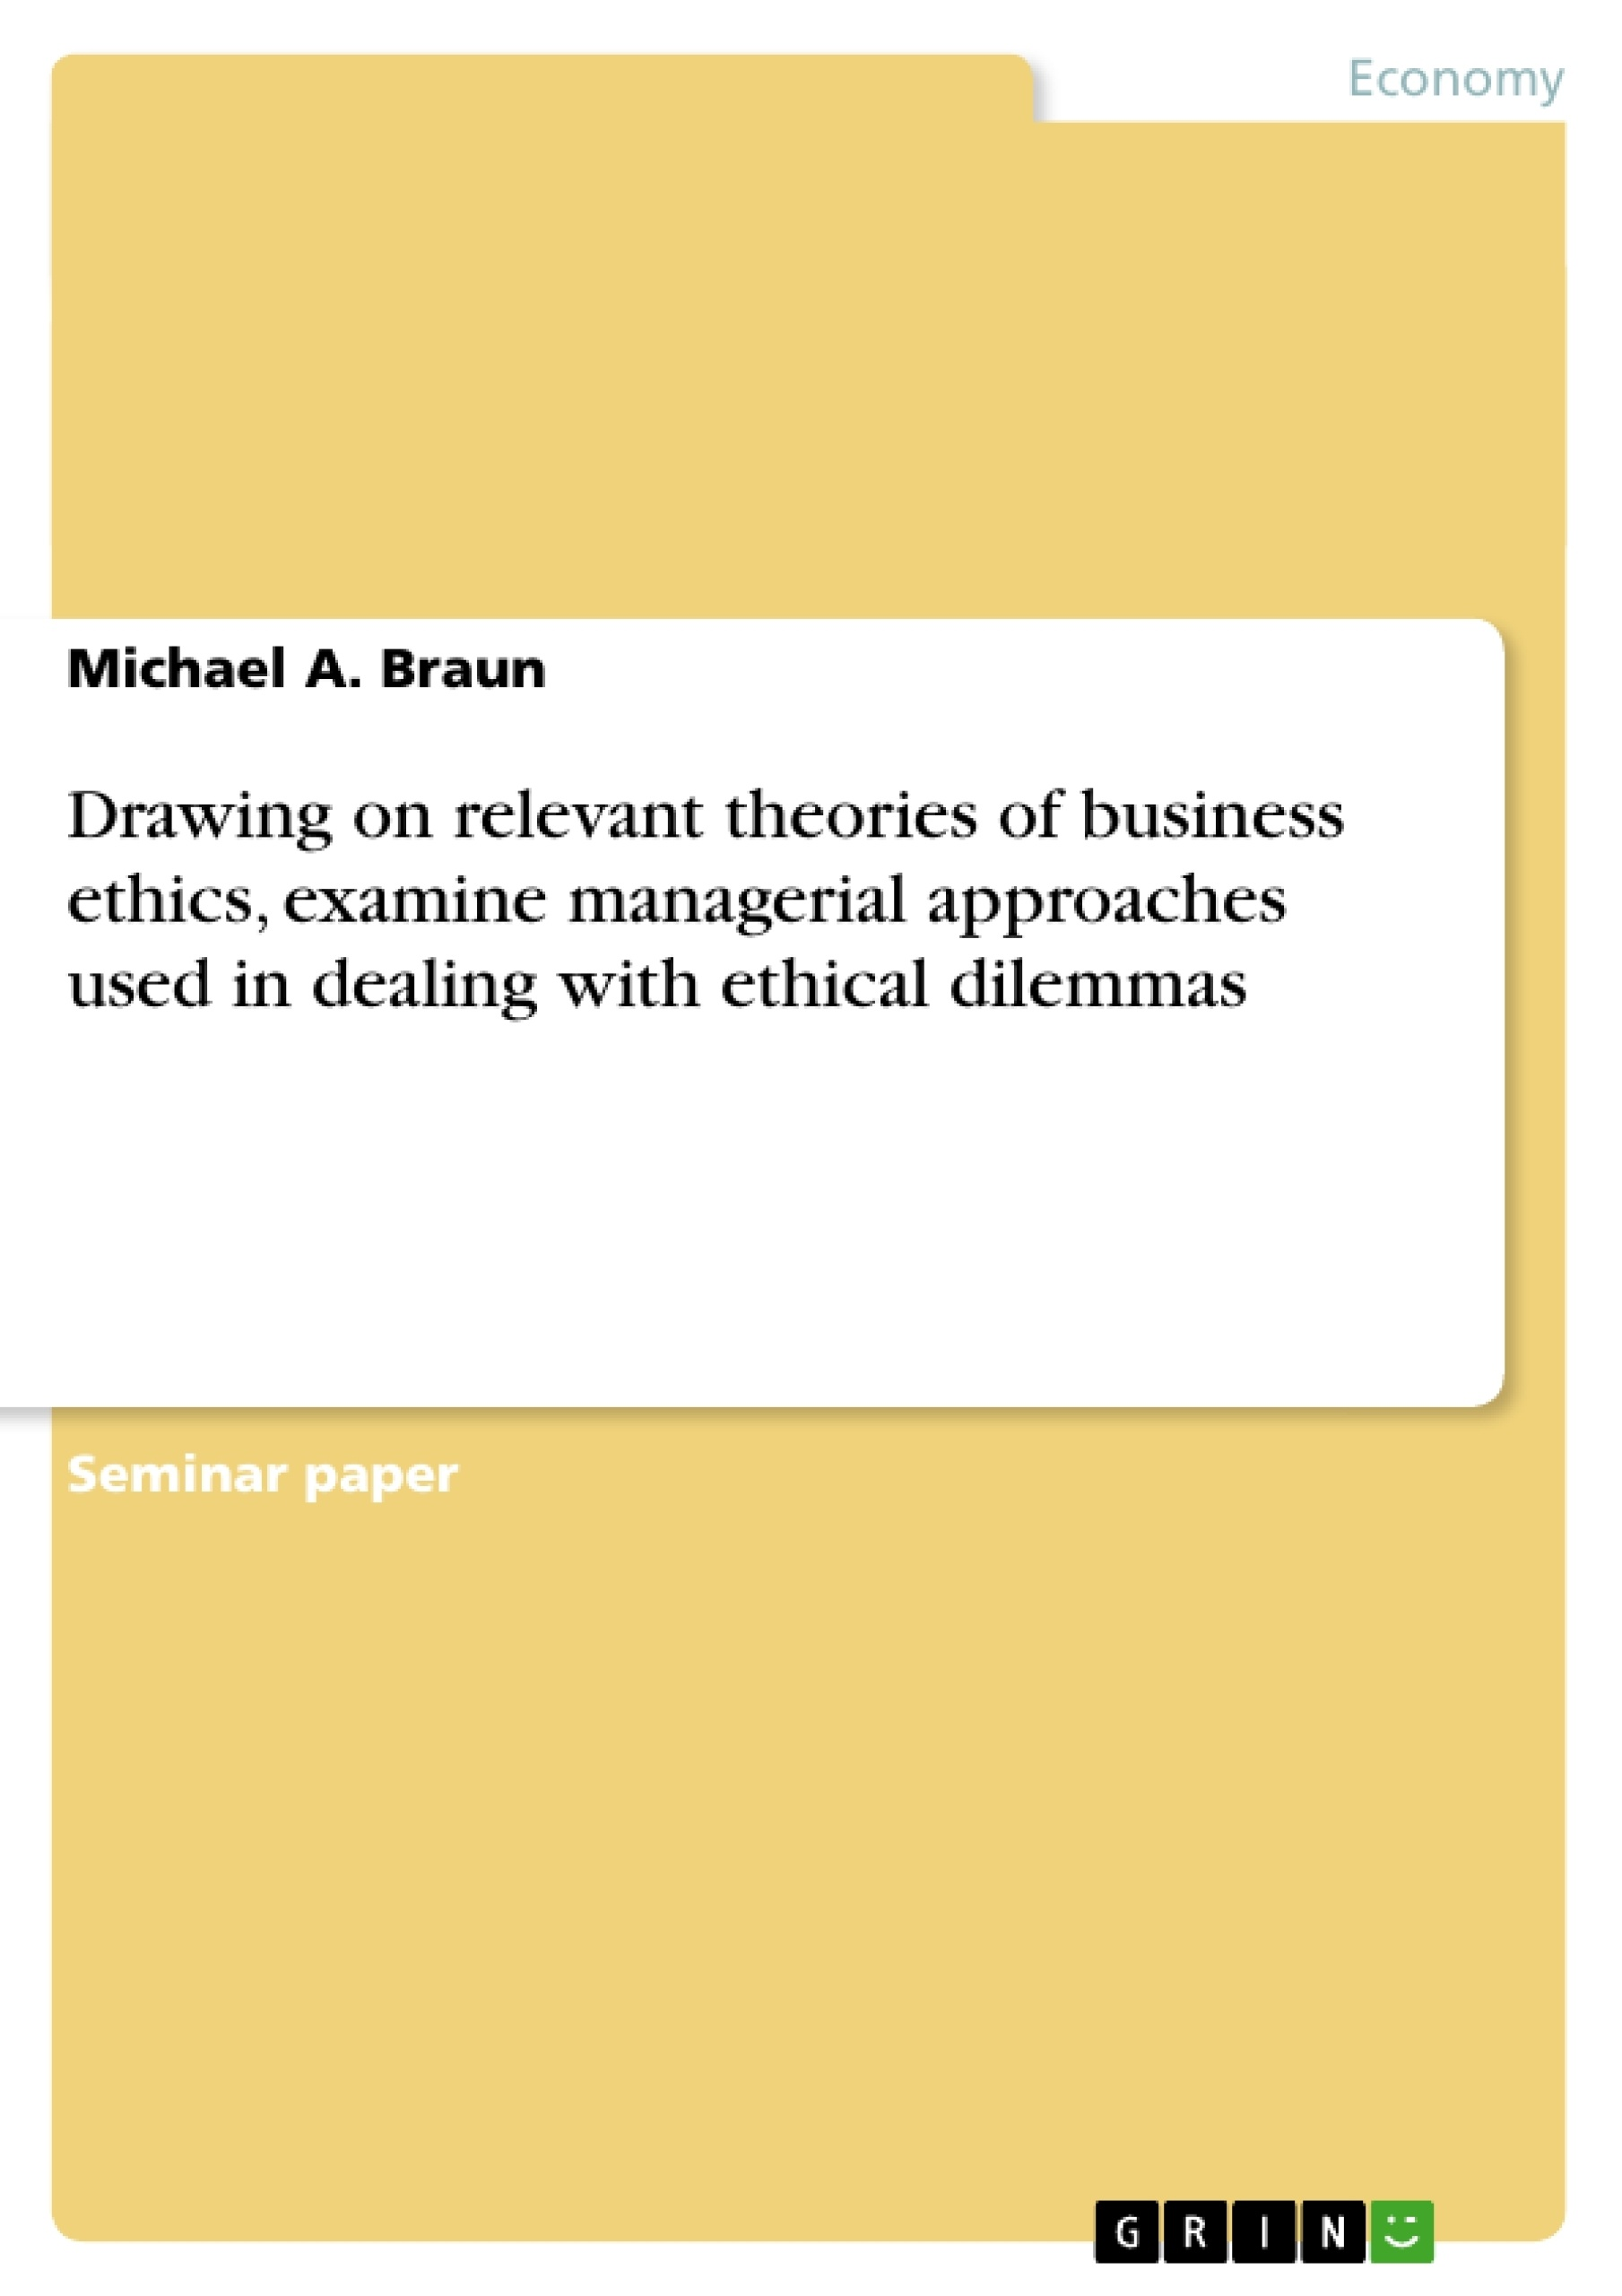 Title: Drawing on relevant theories of business ethics, examine managerial approaches used in dealing with ethical dilemmas